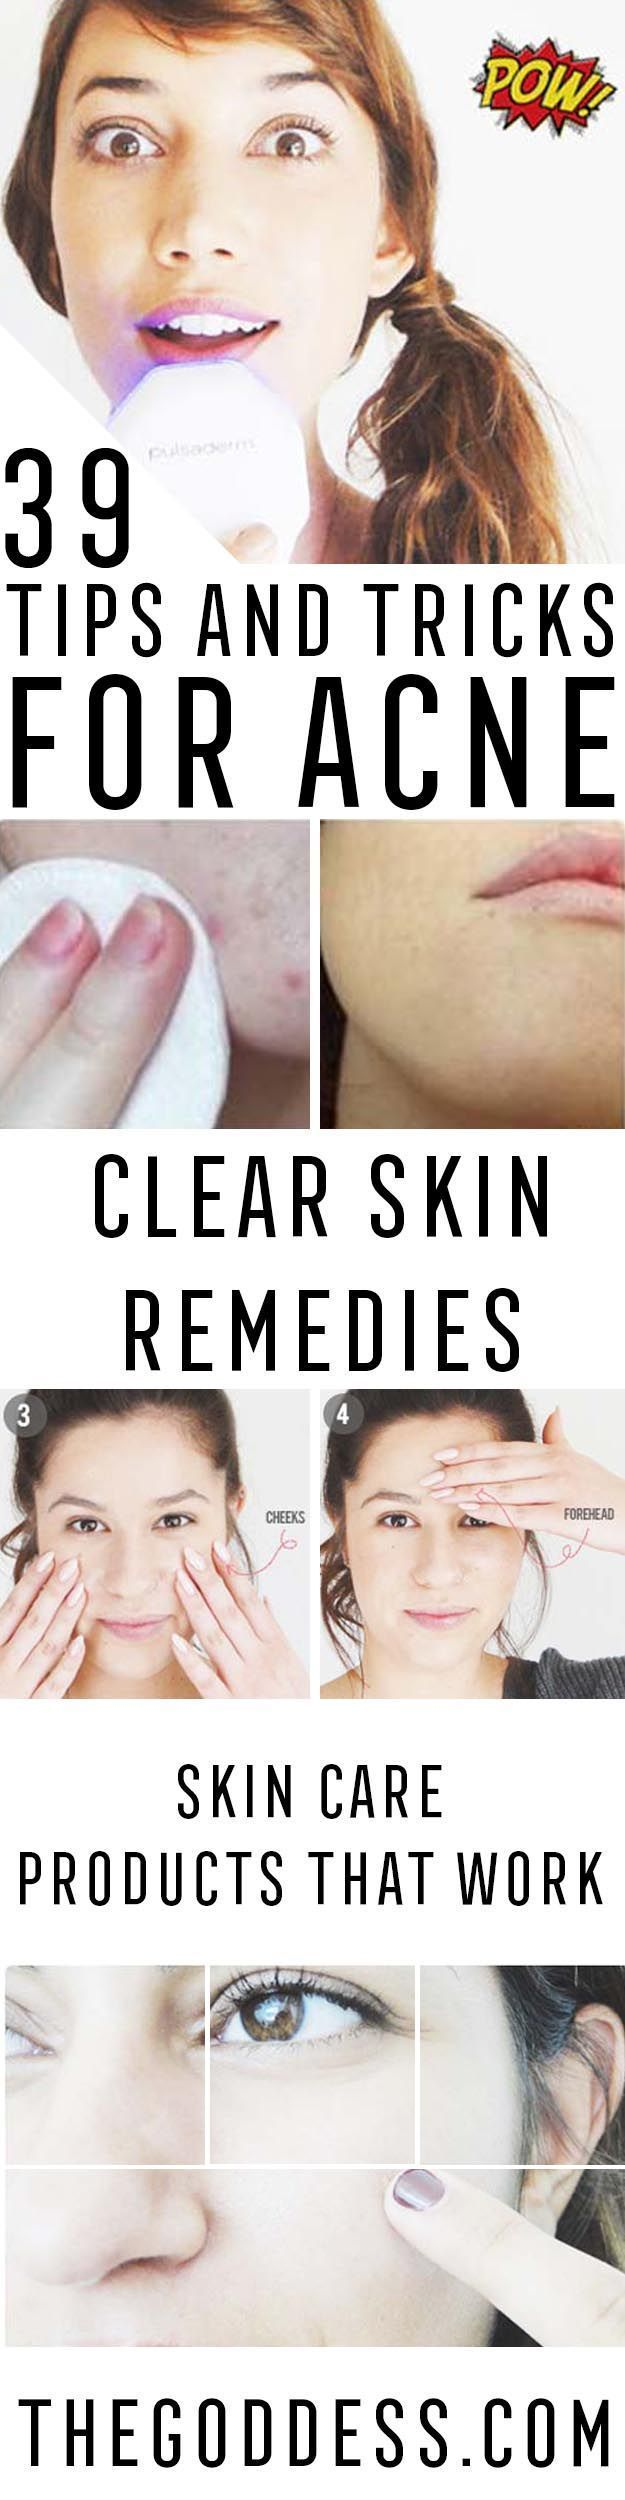 Acne Tips and Tricks - Acne Hacks That Work With Tips And Tricks On How To Cover Up Acne Bumps And How To Cover Up Acne Scars With Makeup and Without Make Up. Life Hacks And Pimple Hacks For Overnight Treatment With Ideas From Pinterest, Instagram, Buzzfeed, and Other Great Skin Care Resources. Get Rid Of And Cover Up Pimples And Acne For Smooth And Clear Skin. Also Some Ideas And Tutorials For Preventing Acne And Using Products To Help Remove Acne Scars And Damage…